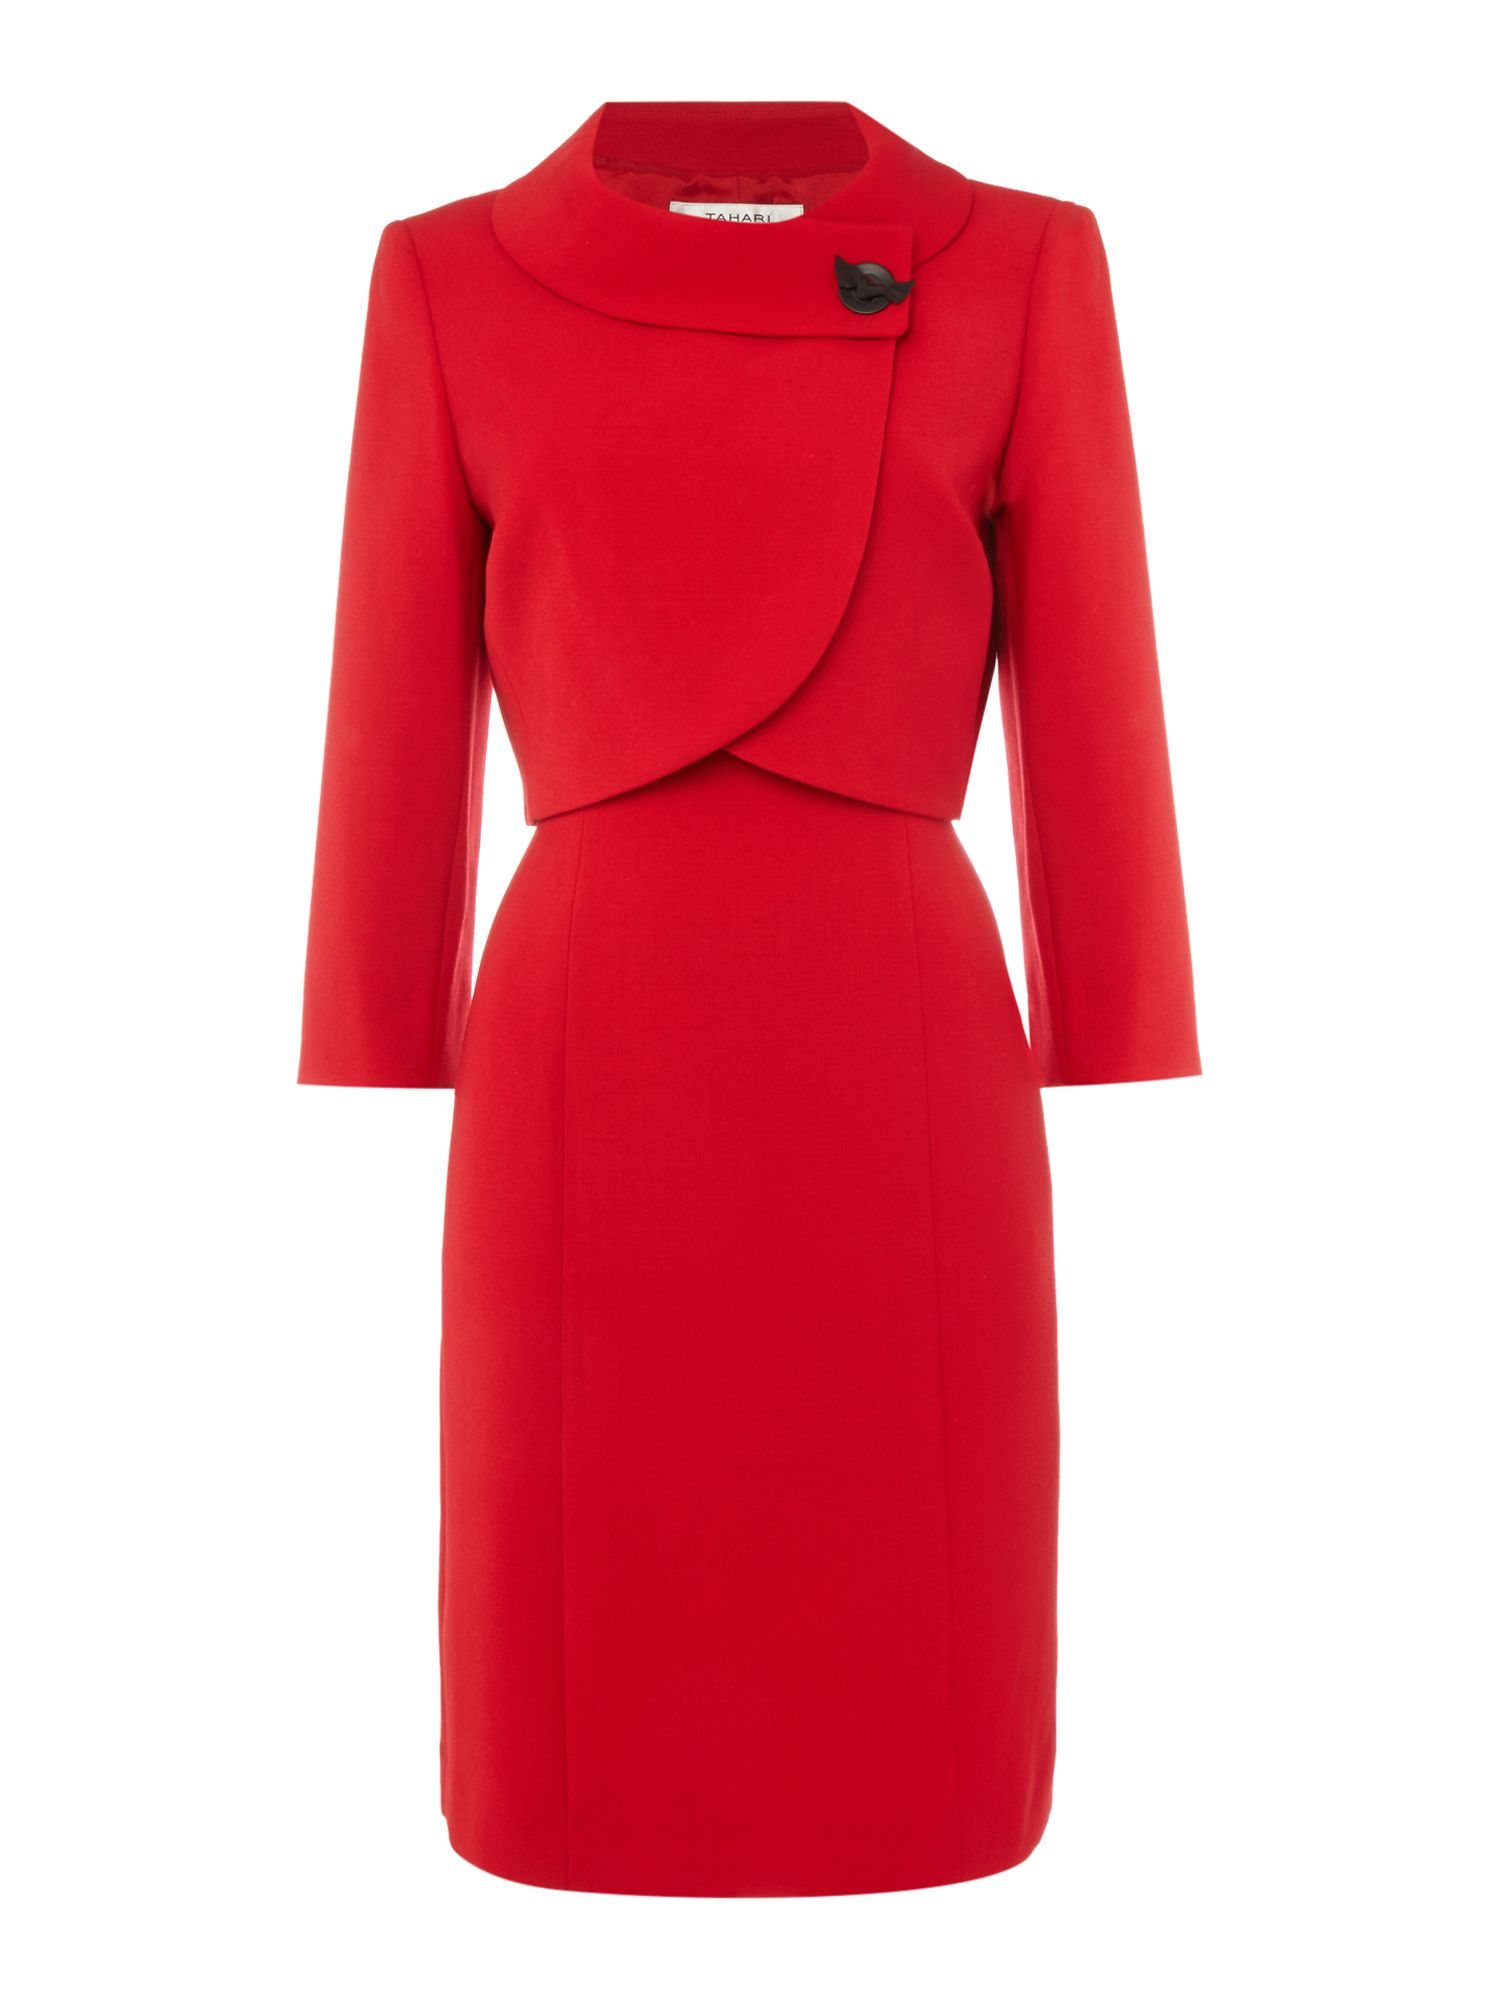 Tahari ASL Red Dress and Jacket Co-Ordinate Red £253.00 AT vintagedancer.com